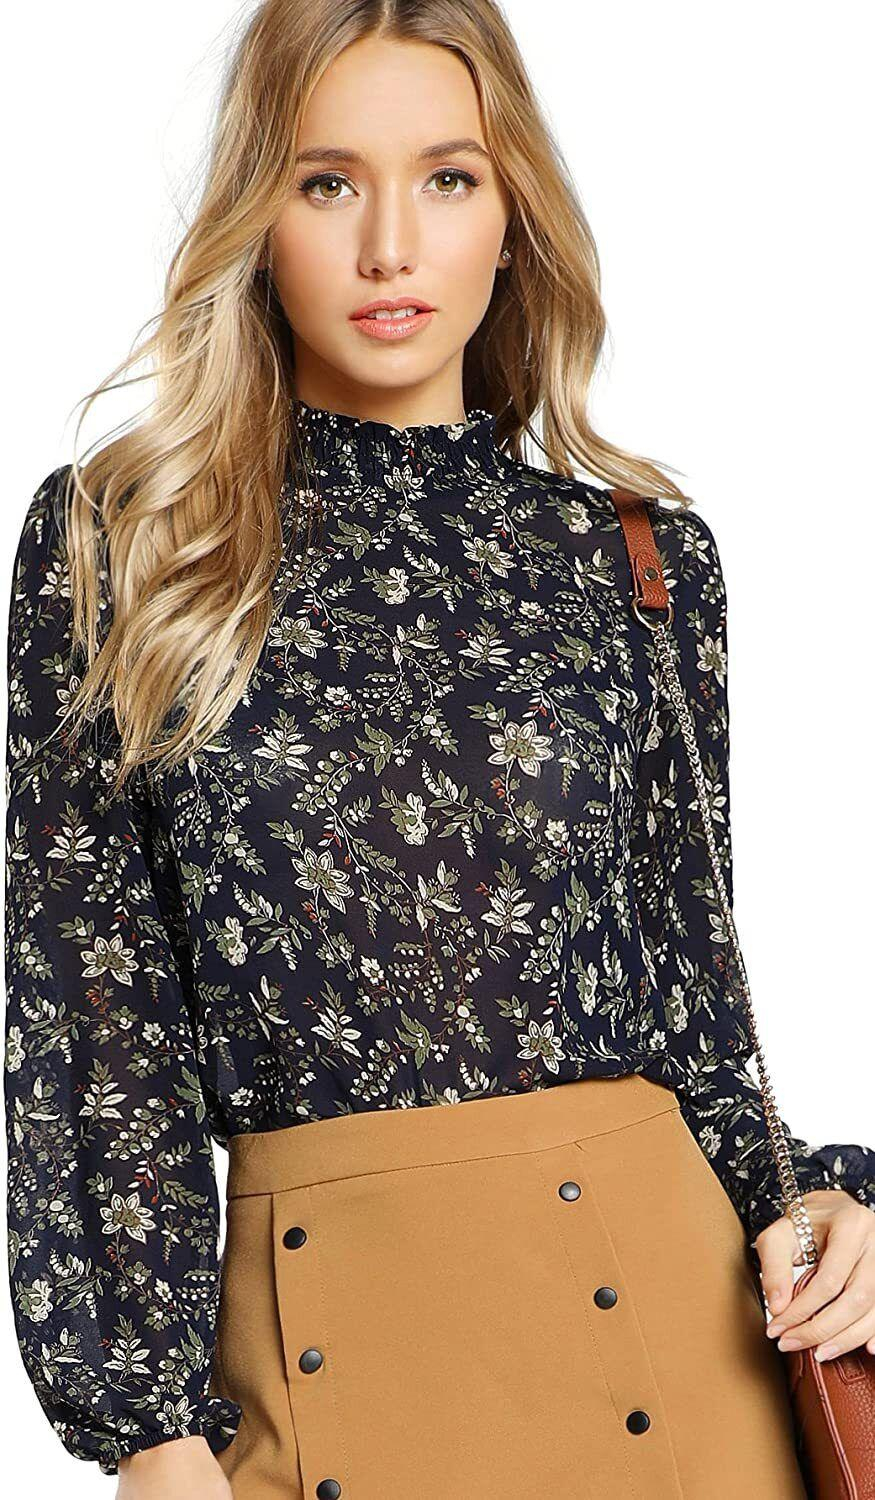 """Because this blouse comes in such a variety of vibrant prints, no one will even be able to detect you own more than one.<br /><br /><strong>Promising review</strong>: """"<strong>I ordered the dark green floral pattern first, and loved it so much I got the cheetah print one!</strong>Comfortable fit that is versatile and perfect for work. I've paired the tops untucked with ankle-length pixie pants, and also tucked in with a high wasted skirt. Be warned — the material has no give! With tops like these, I typically get a large to ensure it fits over my broad (probably broader than average) shoulders. The large in this top was just right for me."""" —<a href=""""https://www.amazon.com/gp/customer-reviews/R9HXV0M38XQ2G?&linkCode=ll2&tag=huffpost-bfsyndication-20&linkId=dfa831a34416b014eec051f67d377674&language=en_US&ref_=as_li_ss_tl"""" target=""""_blank"""" rel=""""nofollow noopener noreferrer"""" data-skimlinks-tracking=""""5876227"""" data-vars-affiliate=""""Amazon"""" data-vars-href=""""https://www.amazon.com/gp/customer-reviews/R9HXV0M38XQ2G?tag=bfchelsea-20&ascsubtag=5876227%2C3%2C35%2Cmobile_web%2C0%2C0%2C16401184"""" data-vars-keywords=""""cleaning,fast fashion"""" data-vars-link-id=""""16401184"""" data-vars-price="""""""" data-vars-product-id=""""20980899"""" data-vars-product-img="""""""" data-vars-product-title="""""""" data-vars-retailers=""""Amazon"""">Carly P</a><br /><br /><strong><a href=""""https://www.amazon.com/Floerns-Womens-Floral-Sleeve-Chiffon/dp/B0786LZ17G?&linkCode=ll1&tag=huffpost-bfsyndication-20&linkId=add58a1acc871d644157730c3d1268ae&language=en_US&ref_=as_li_ss_tl"""" target=""""_blank"""" rel=""""noopener noreferrer"""">Get it from Amazon for$19.99+(available in sizes XS–XXL and in 21 patterns).</a></strong>"""